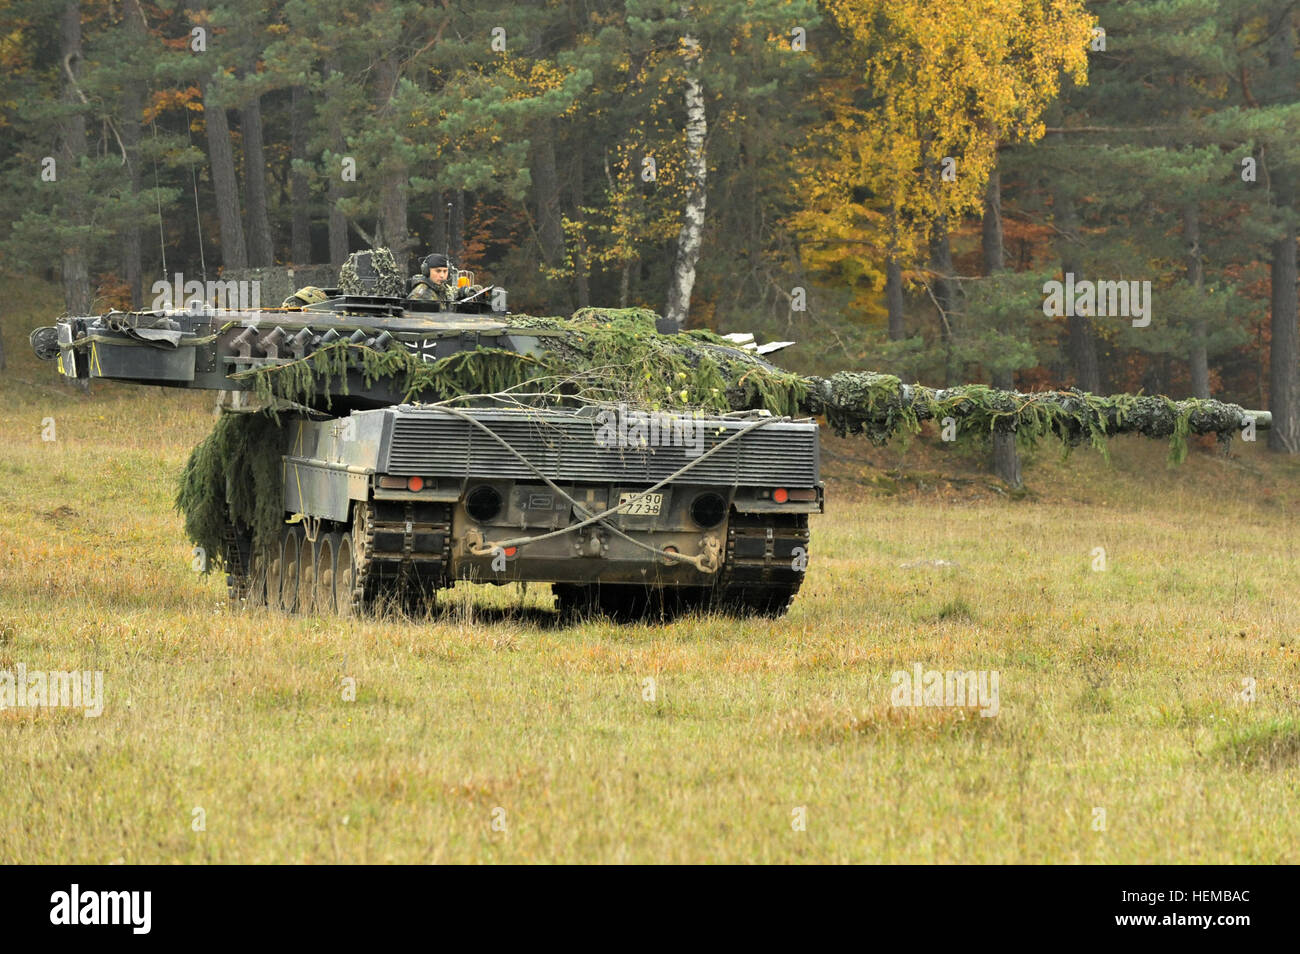 A German Army Leopard II tank, assigned to 104th Panzer Battalion, scans the battlefield at the Joint Multinational - Stock Image